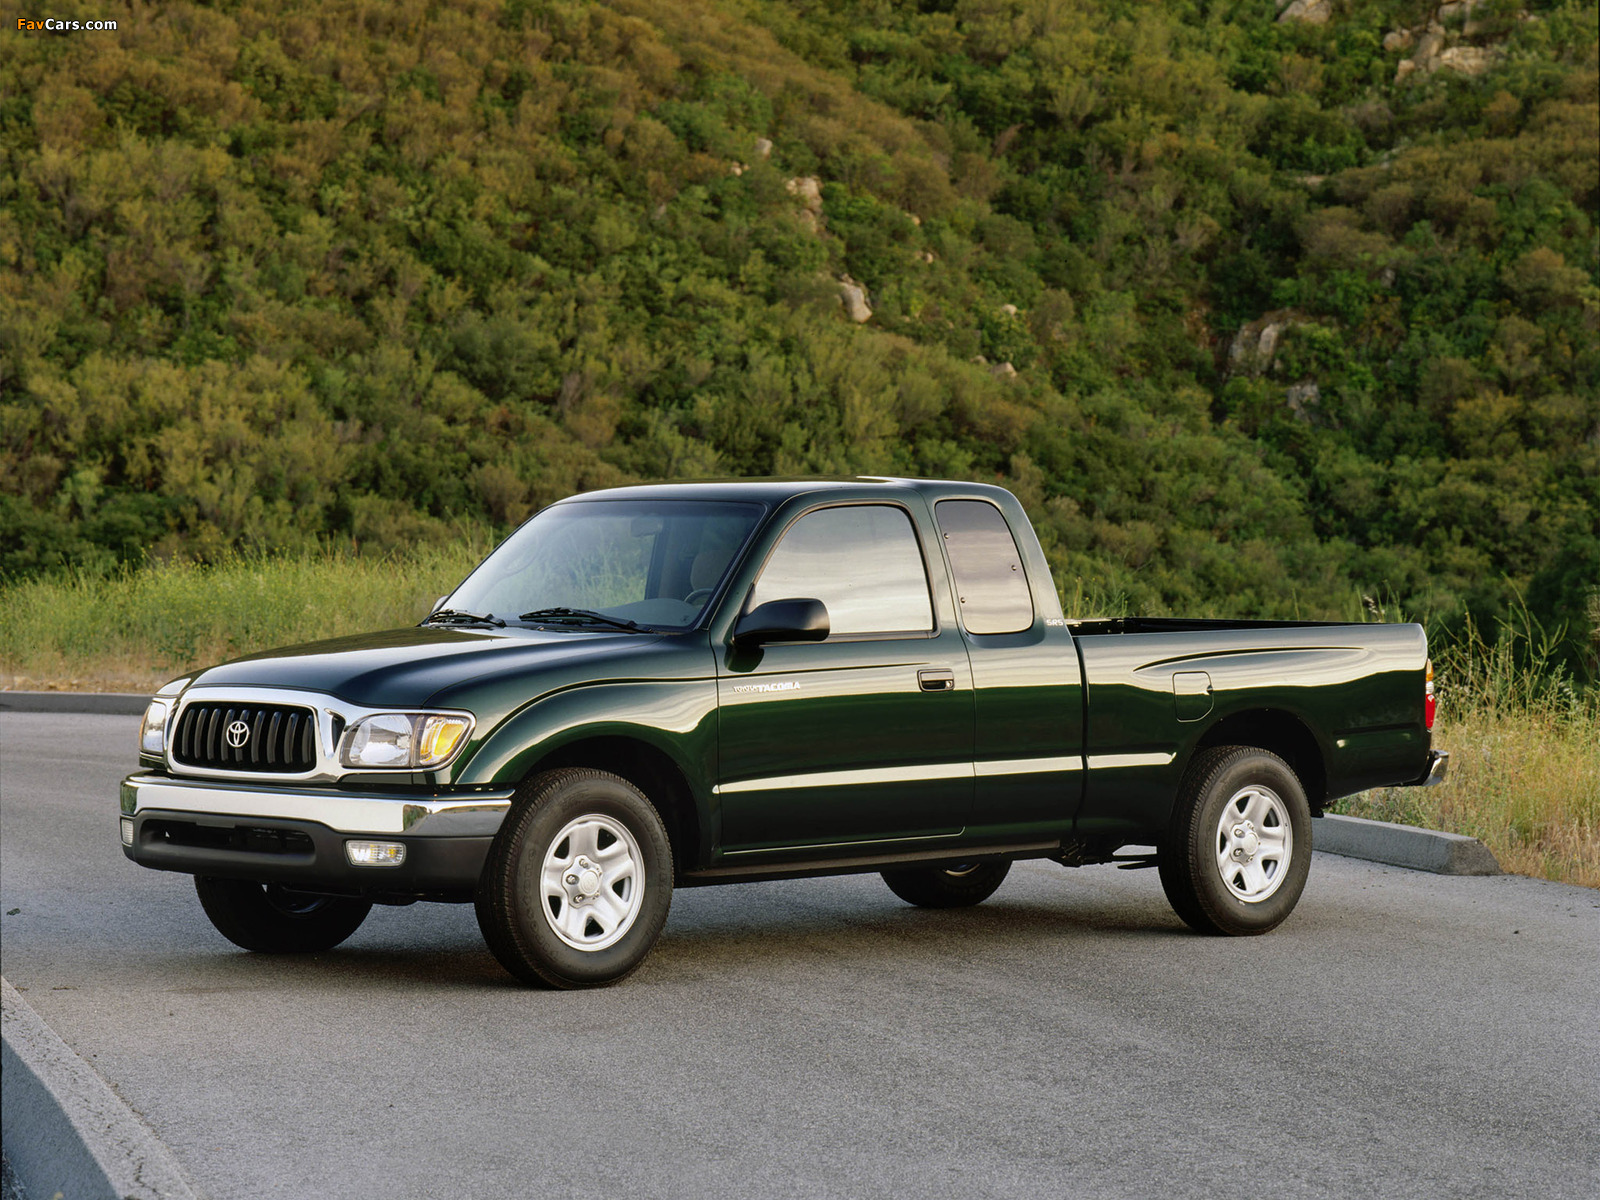 Toyota Tacoma Sr5 2wd Xtracab 2001 04 Wallpapers 1600x1200